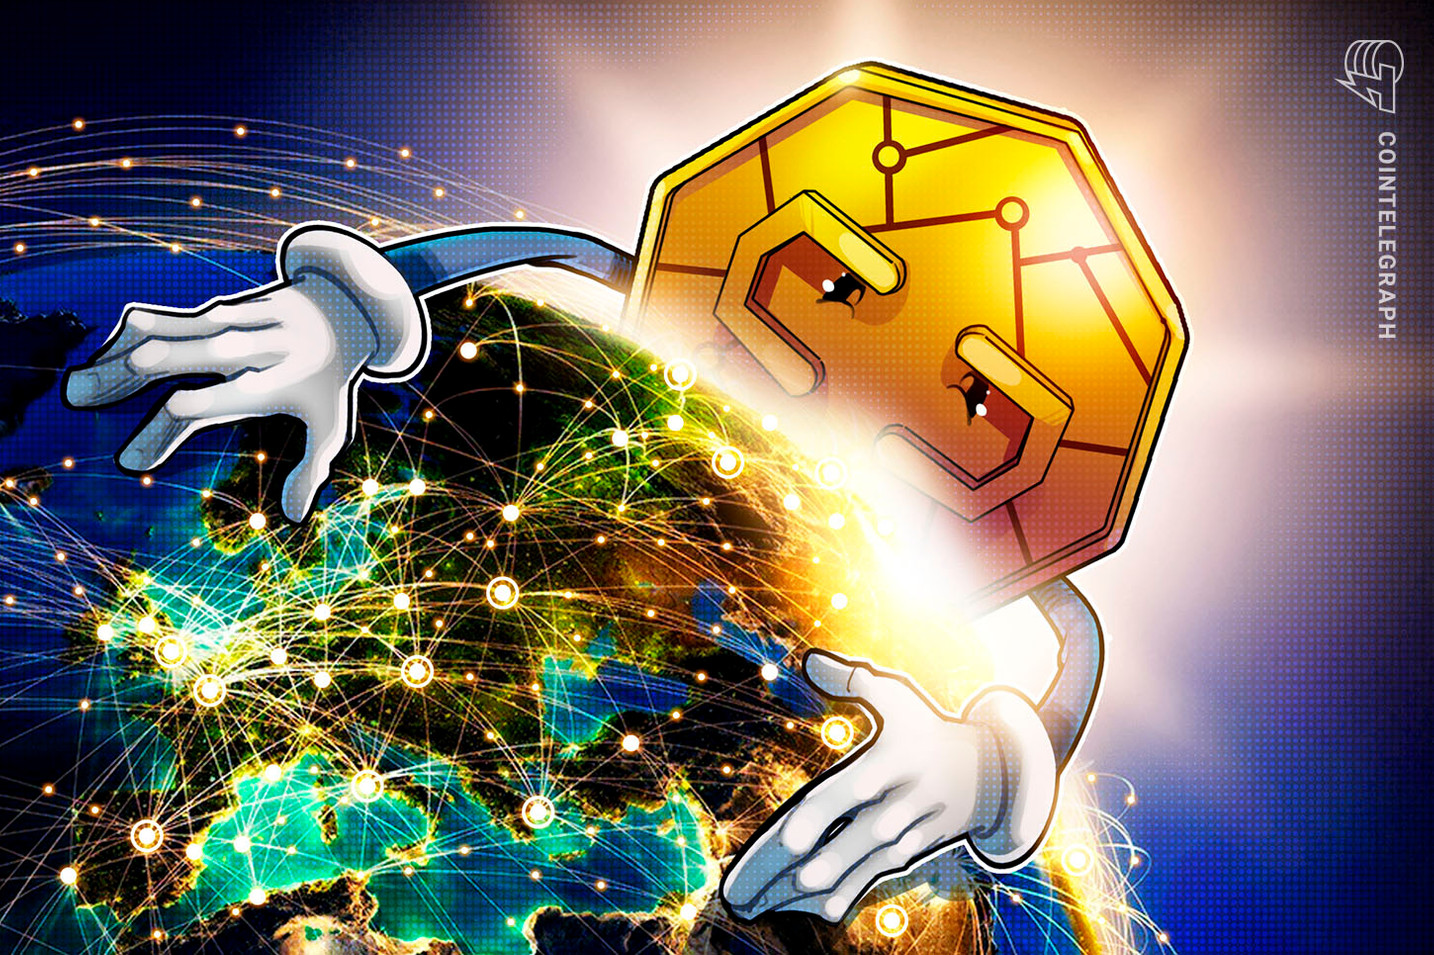 Global Blockchain B2B Volume Expected to Hit $4.4 Trillion by 2024